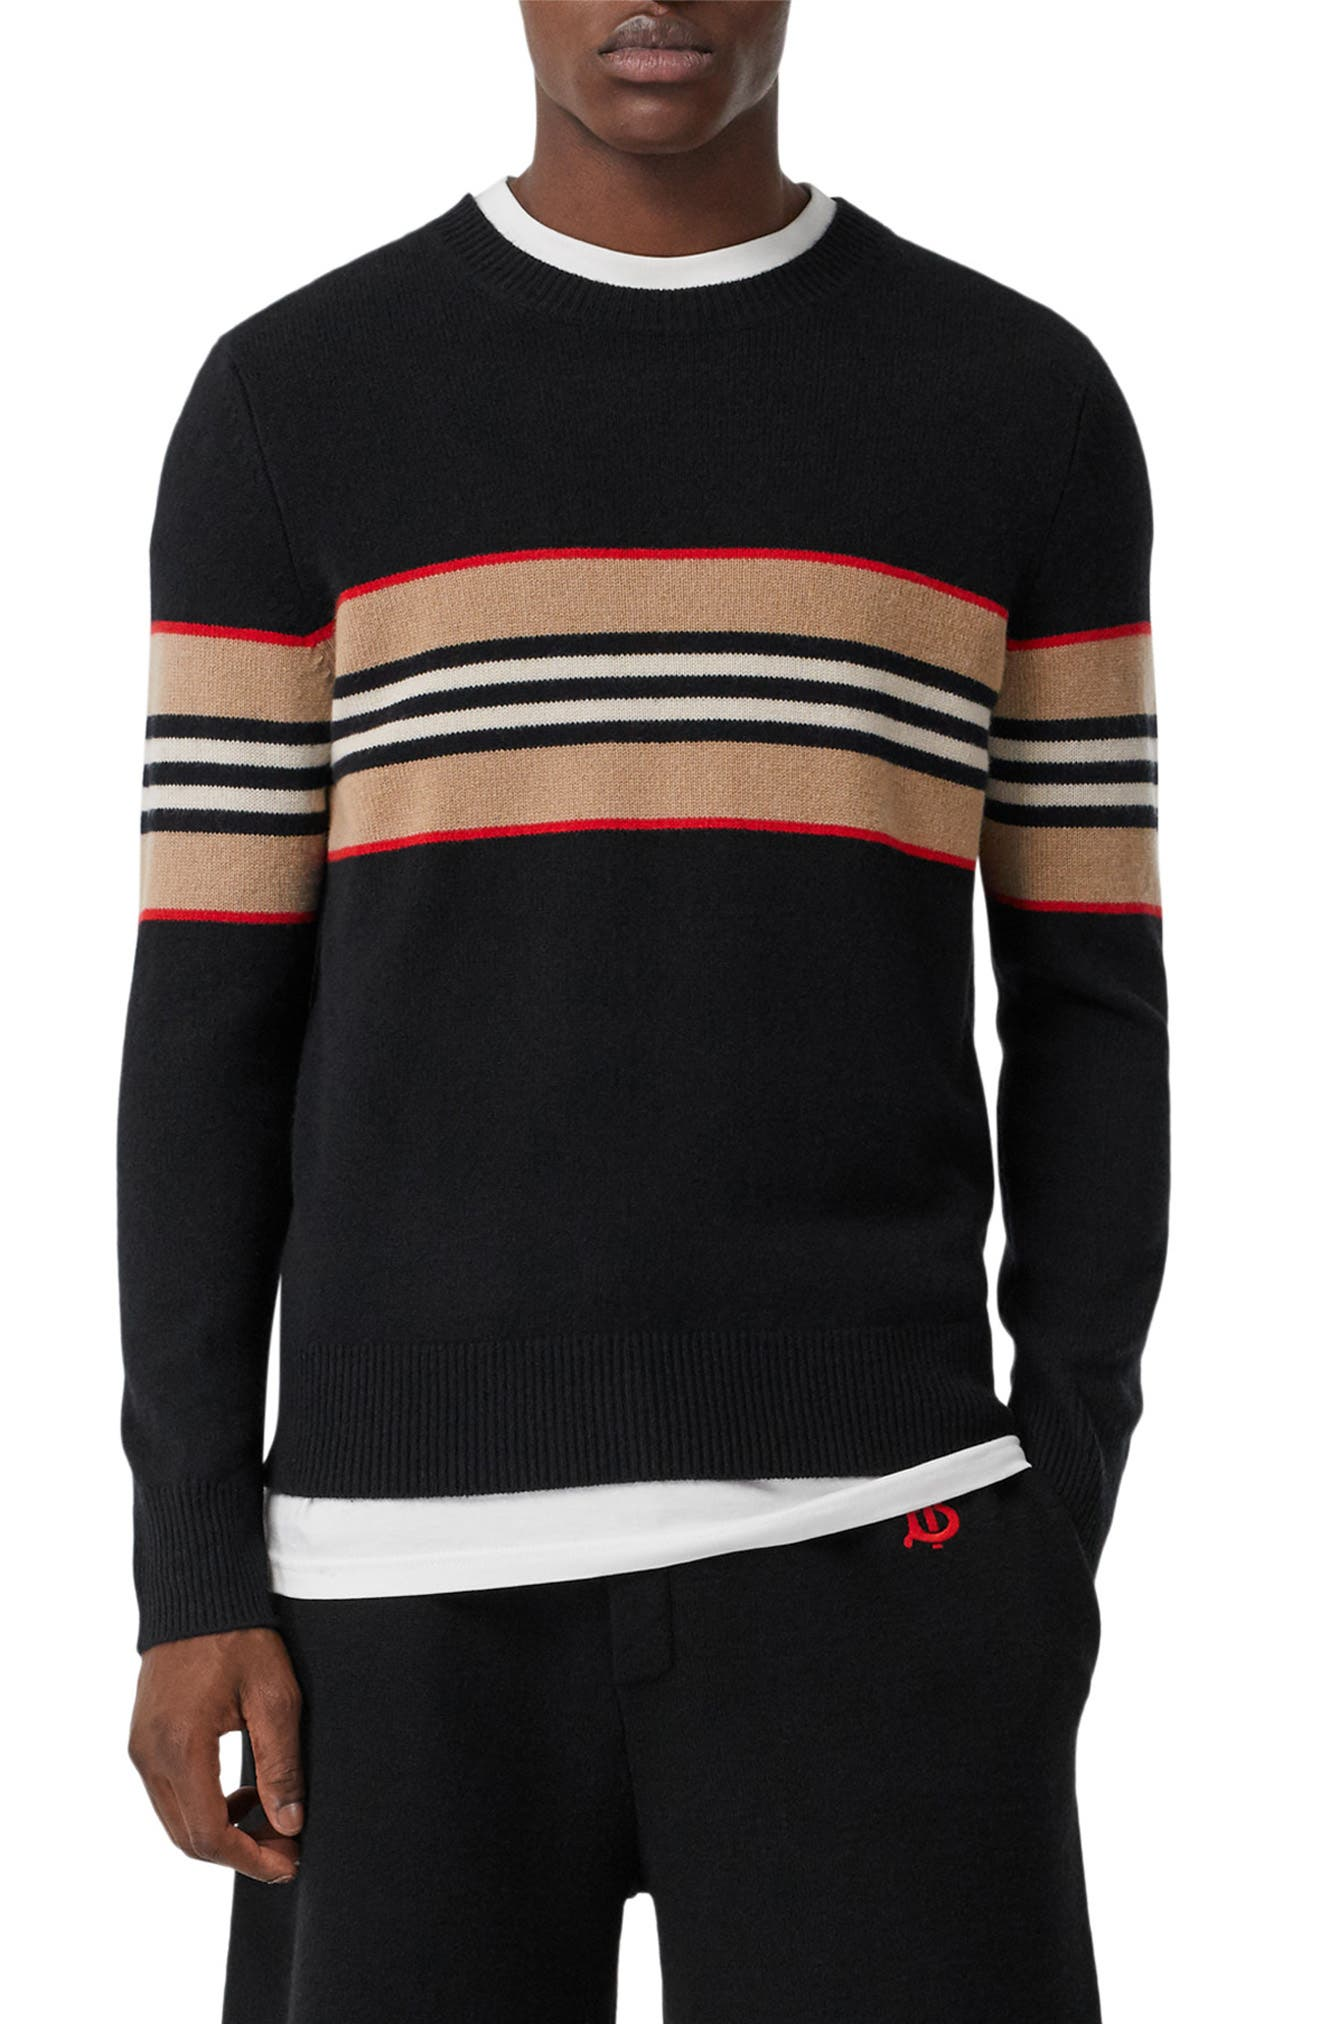 Burberry Sale Sweaters | The Art of